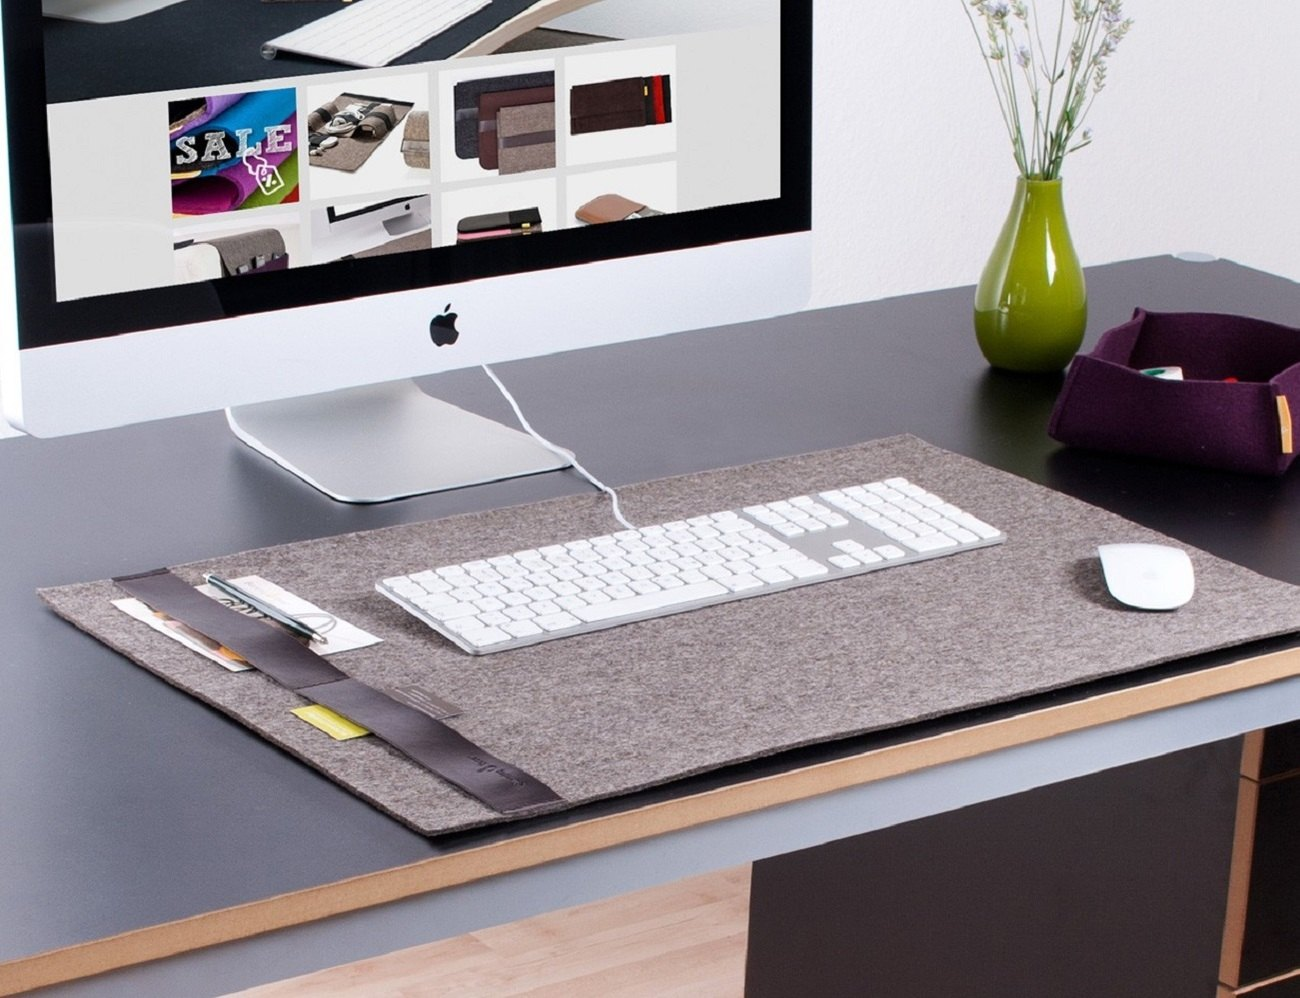 DeskPad Classic – Felt Desktop Pad With Leather Strip